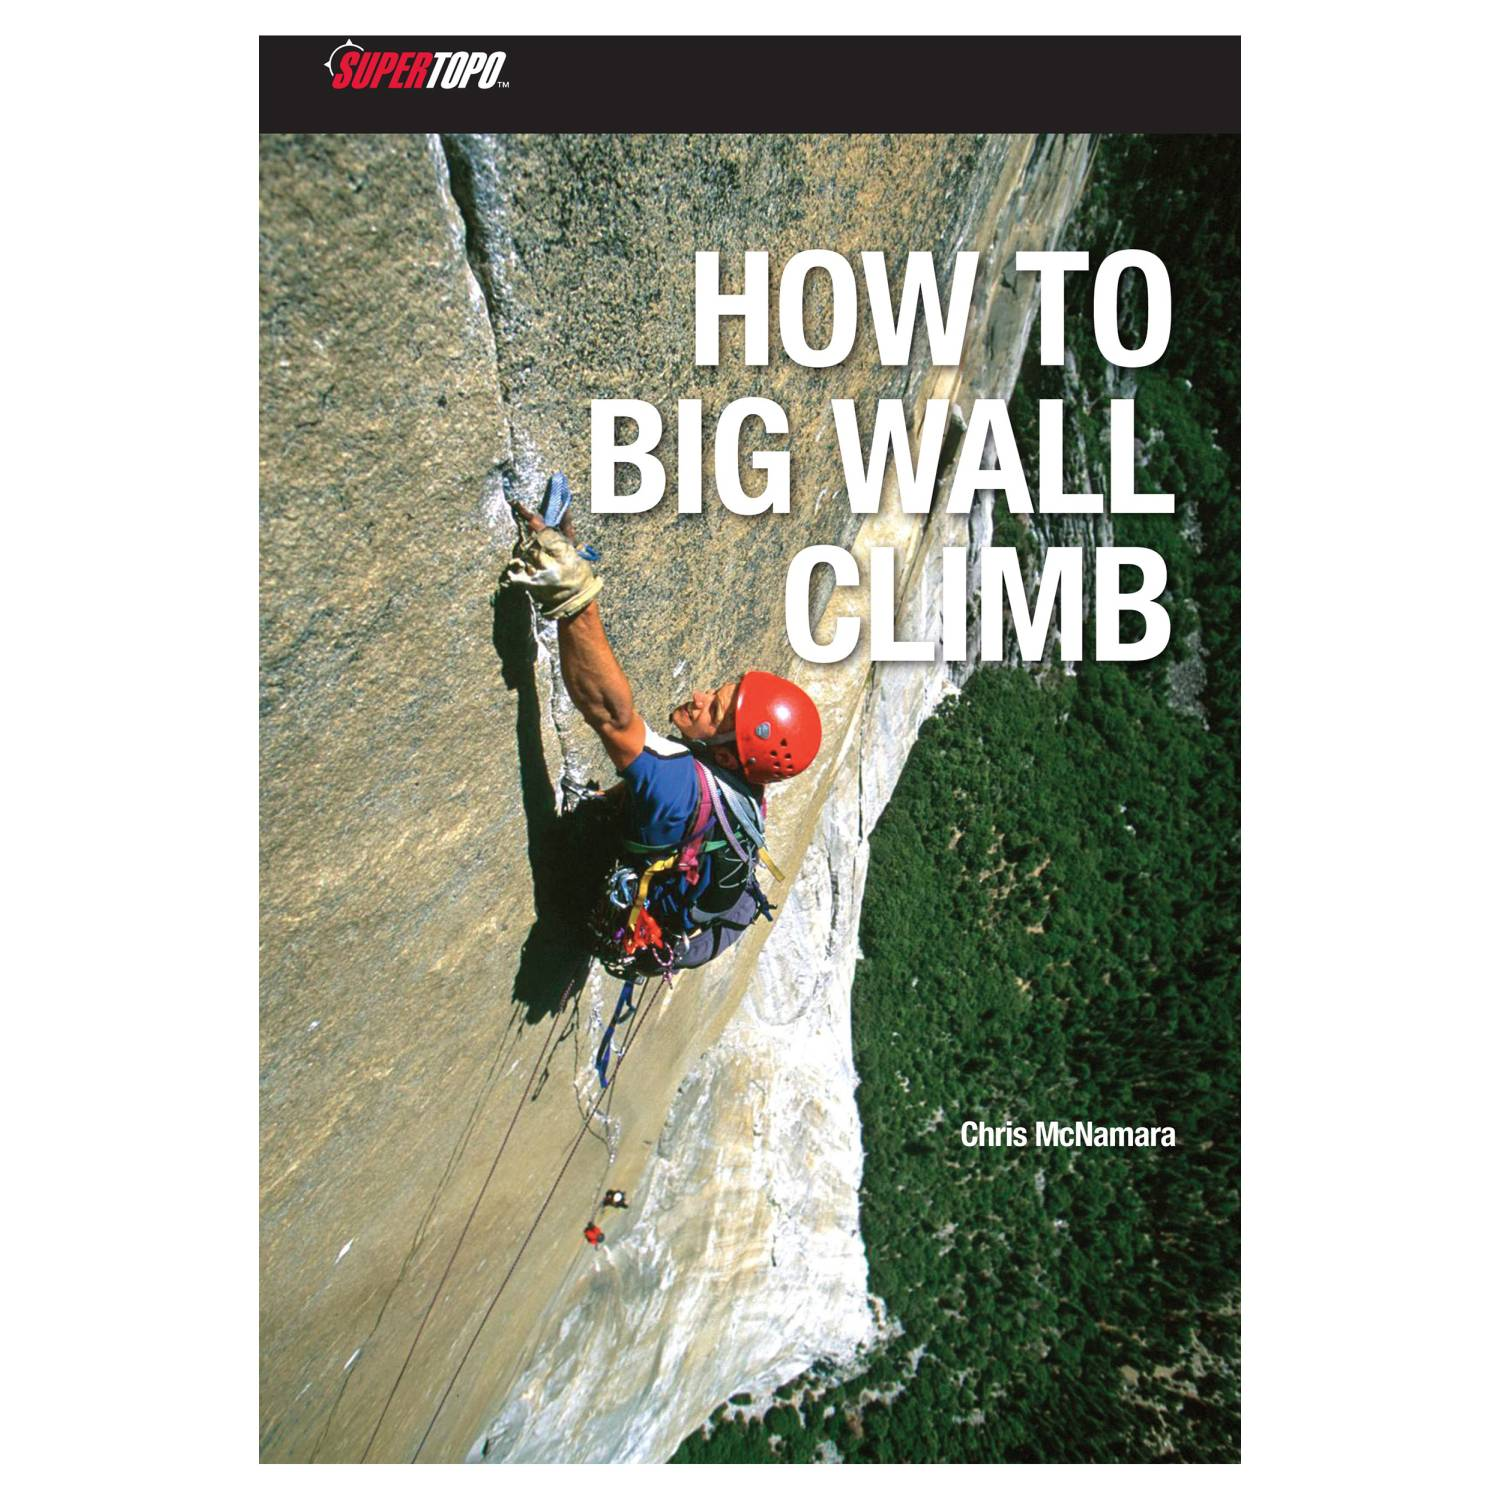 photo of a SuperTopo climbing book